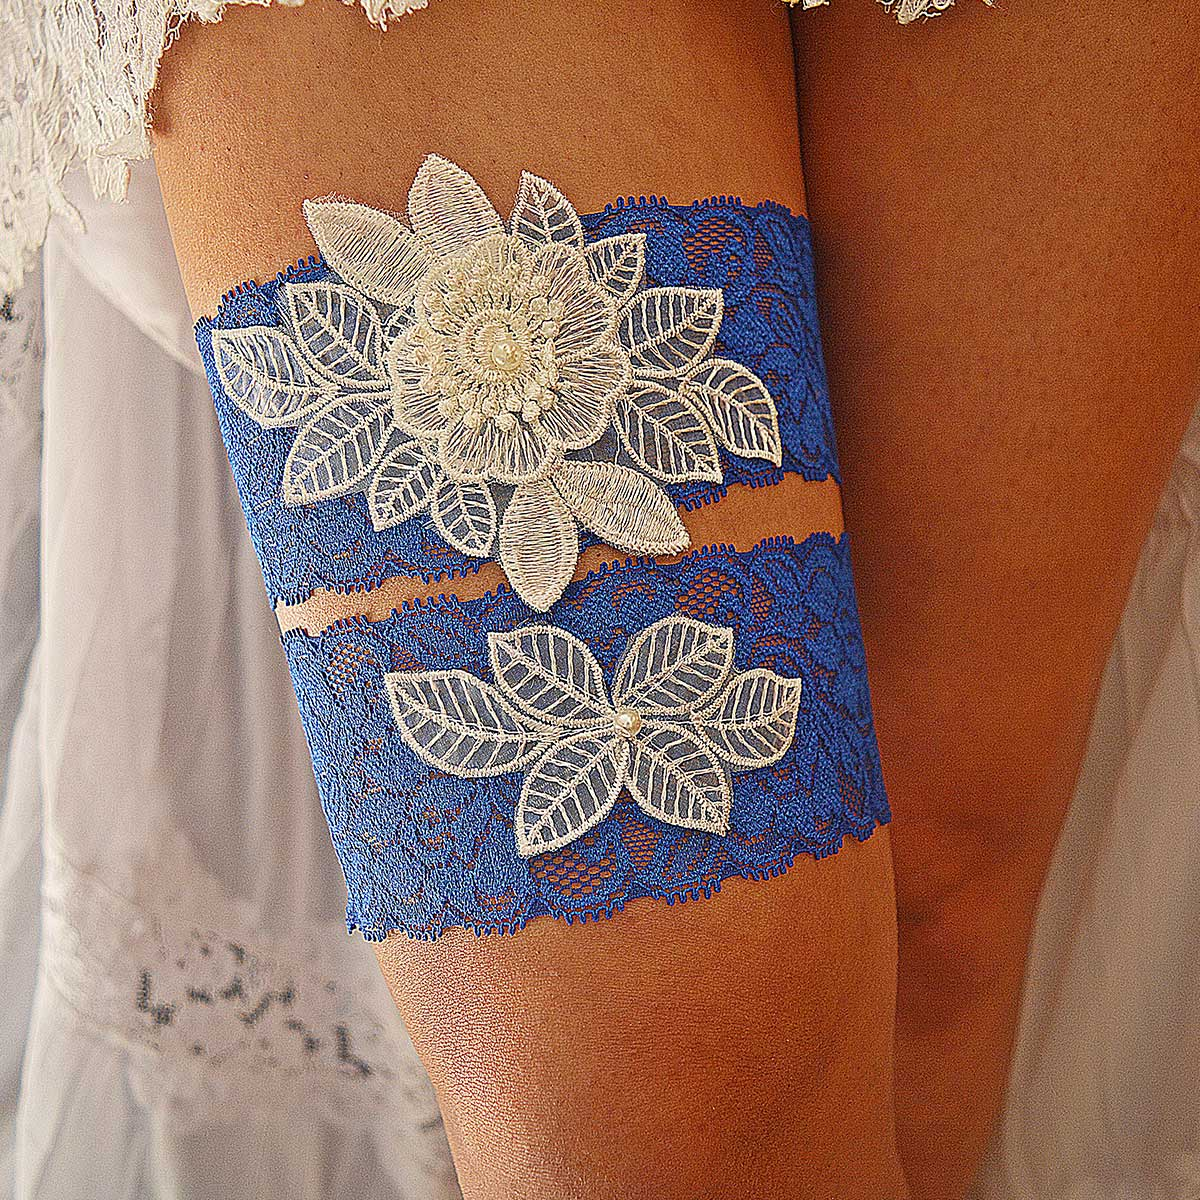 Royal Blue Bridal Garter With White Pearls & Lace 3D Applique